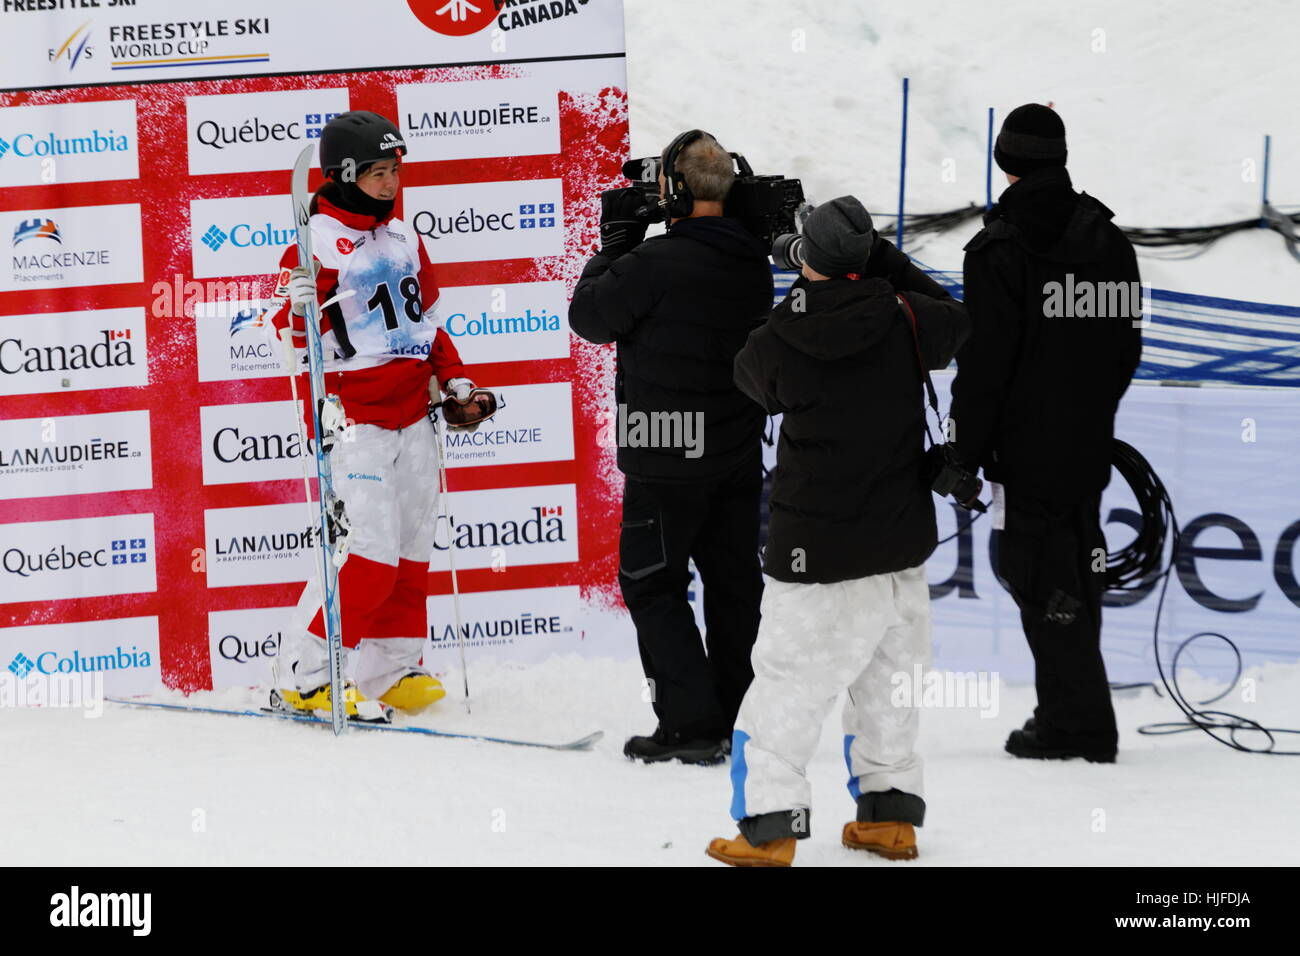 Alex-Anne Gagnon poses for the media at the FIS Freestyle Ski world Cup 2017 moguls at Val Saint-Come,Quebec. January - Stock Image